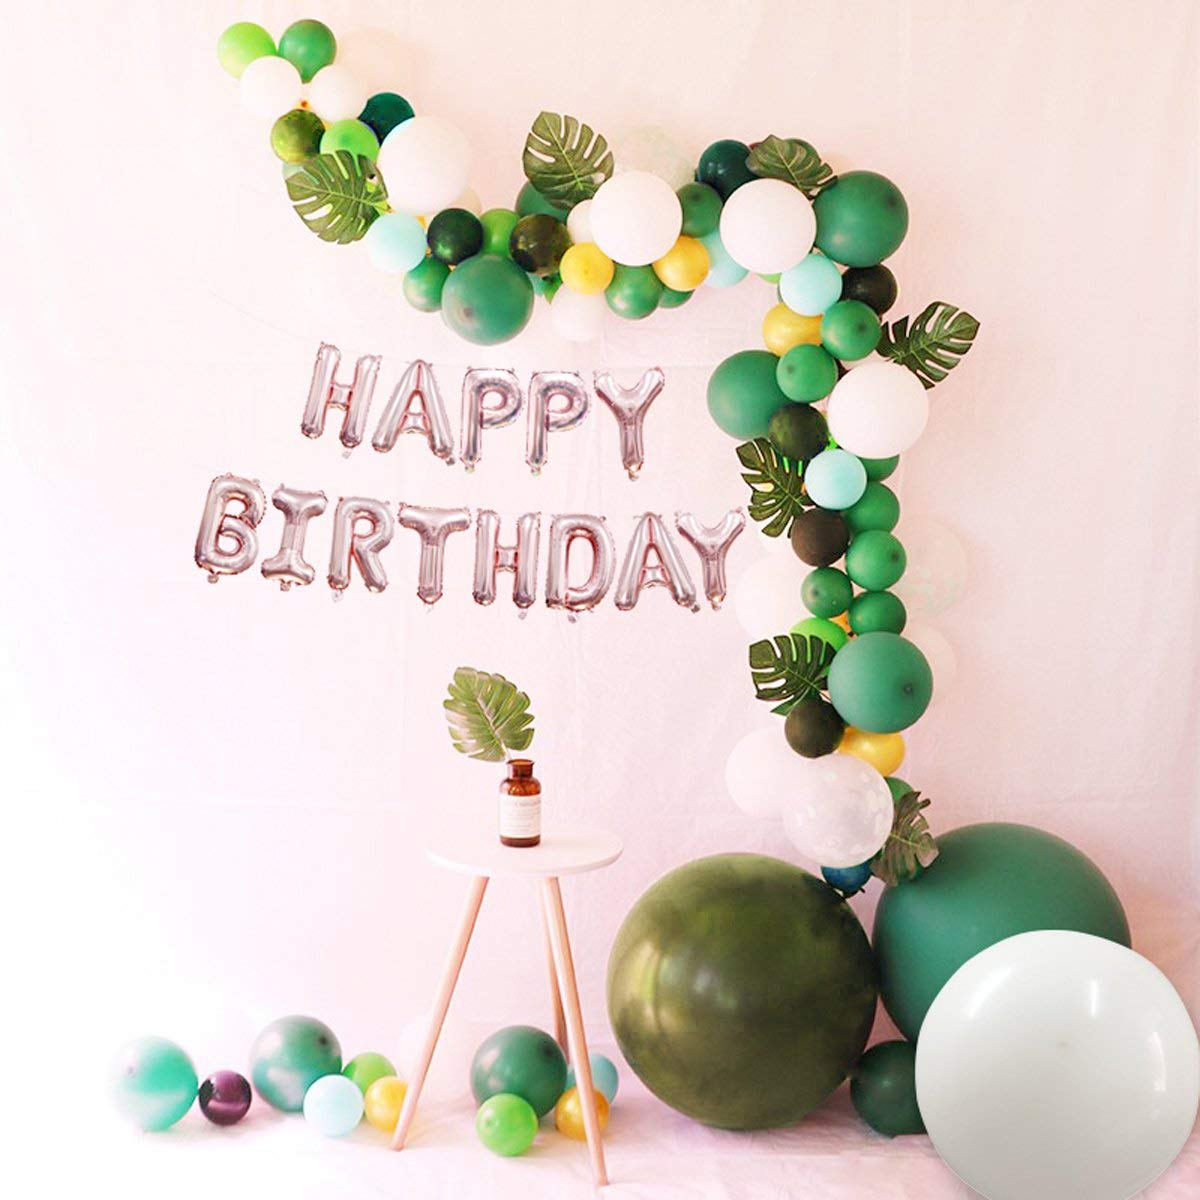 Happy Birthday Balloons Banner Rose Gold 16 inch with 12pcs Artificial Palm Leaves Monstera Leaf and Latex Balloons